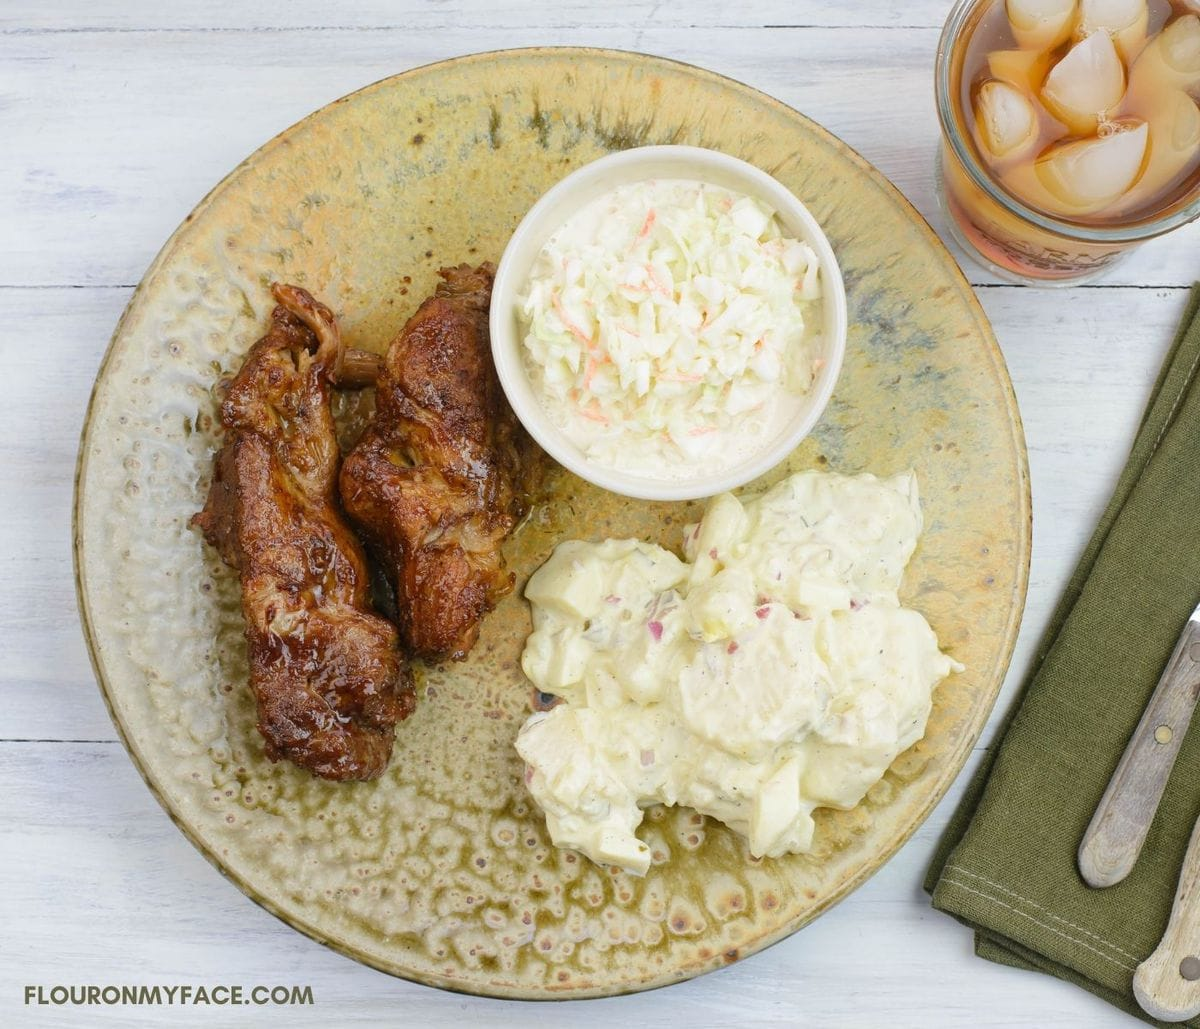 A dinner plate with a serving of Country style boneless pork ribs with two side dishes.